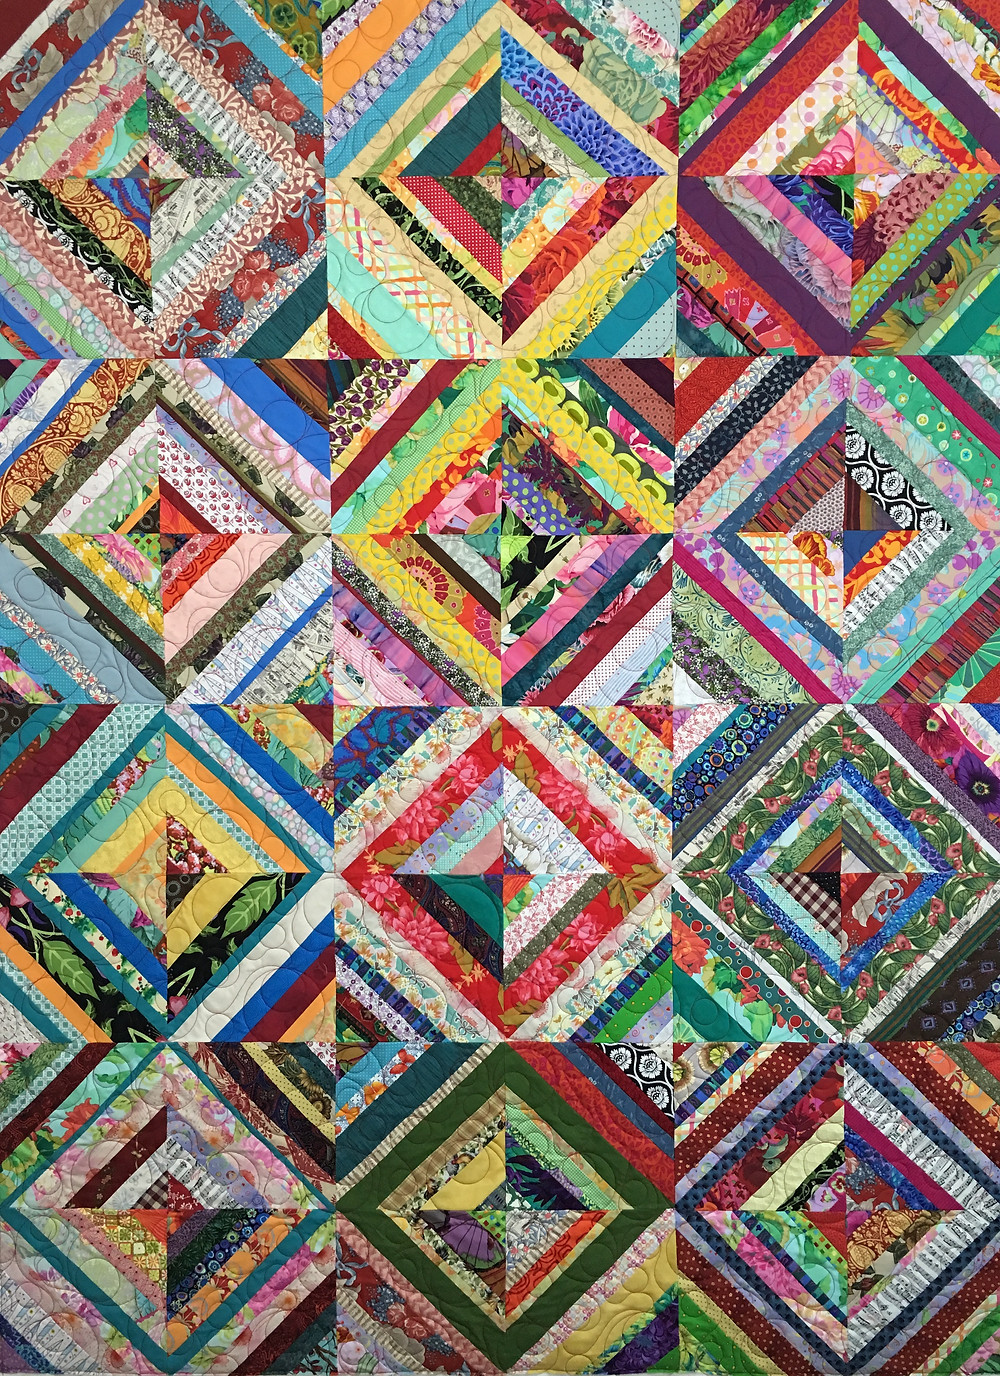 Jean Colorful Scrappy Quilt in brights